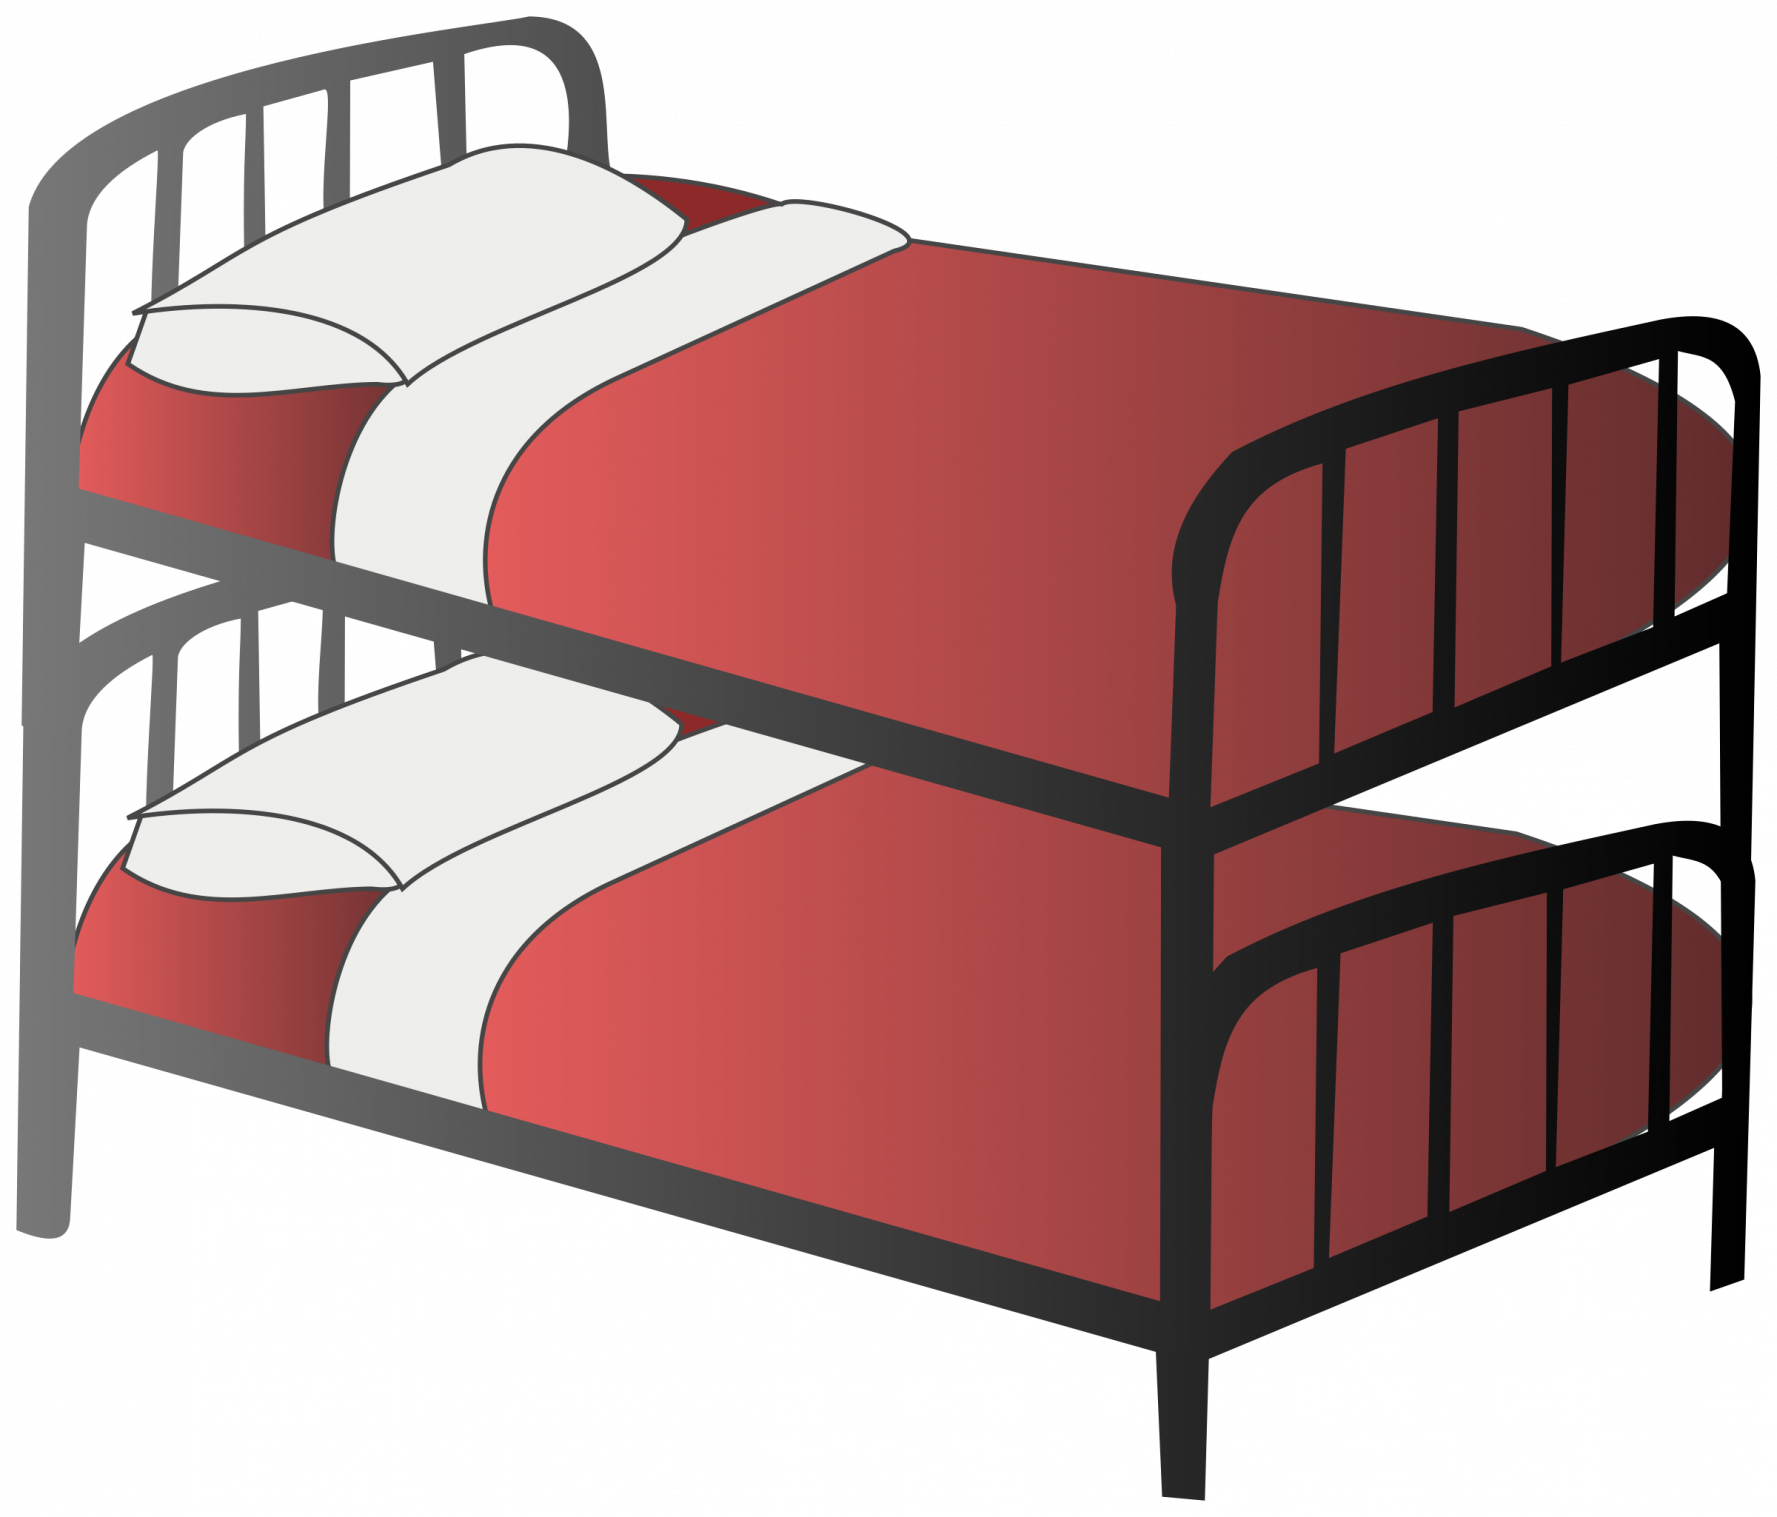 cartoon bunk beds. Furniture clipart small bed